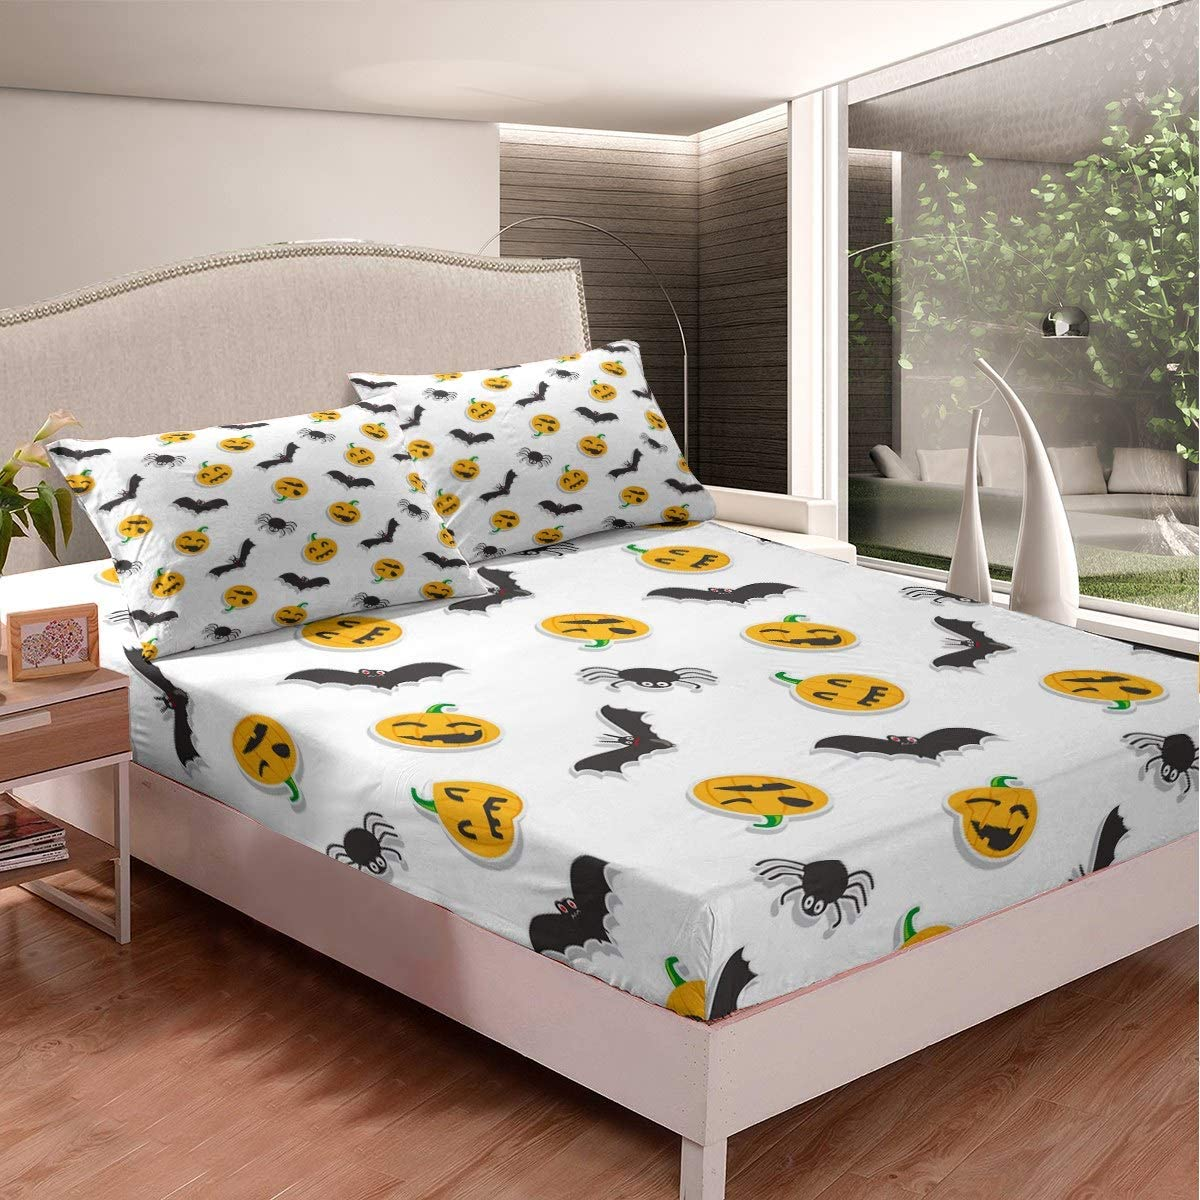 Palm Leaf Bedding Set for Kids Boys Girls Tropical Leaves Bed Sheet Set Botanical Pattern Fitted Sheet Nature Theme Bed Cover,Room Decor 3Pcs Sheets Double Size